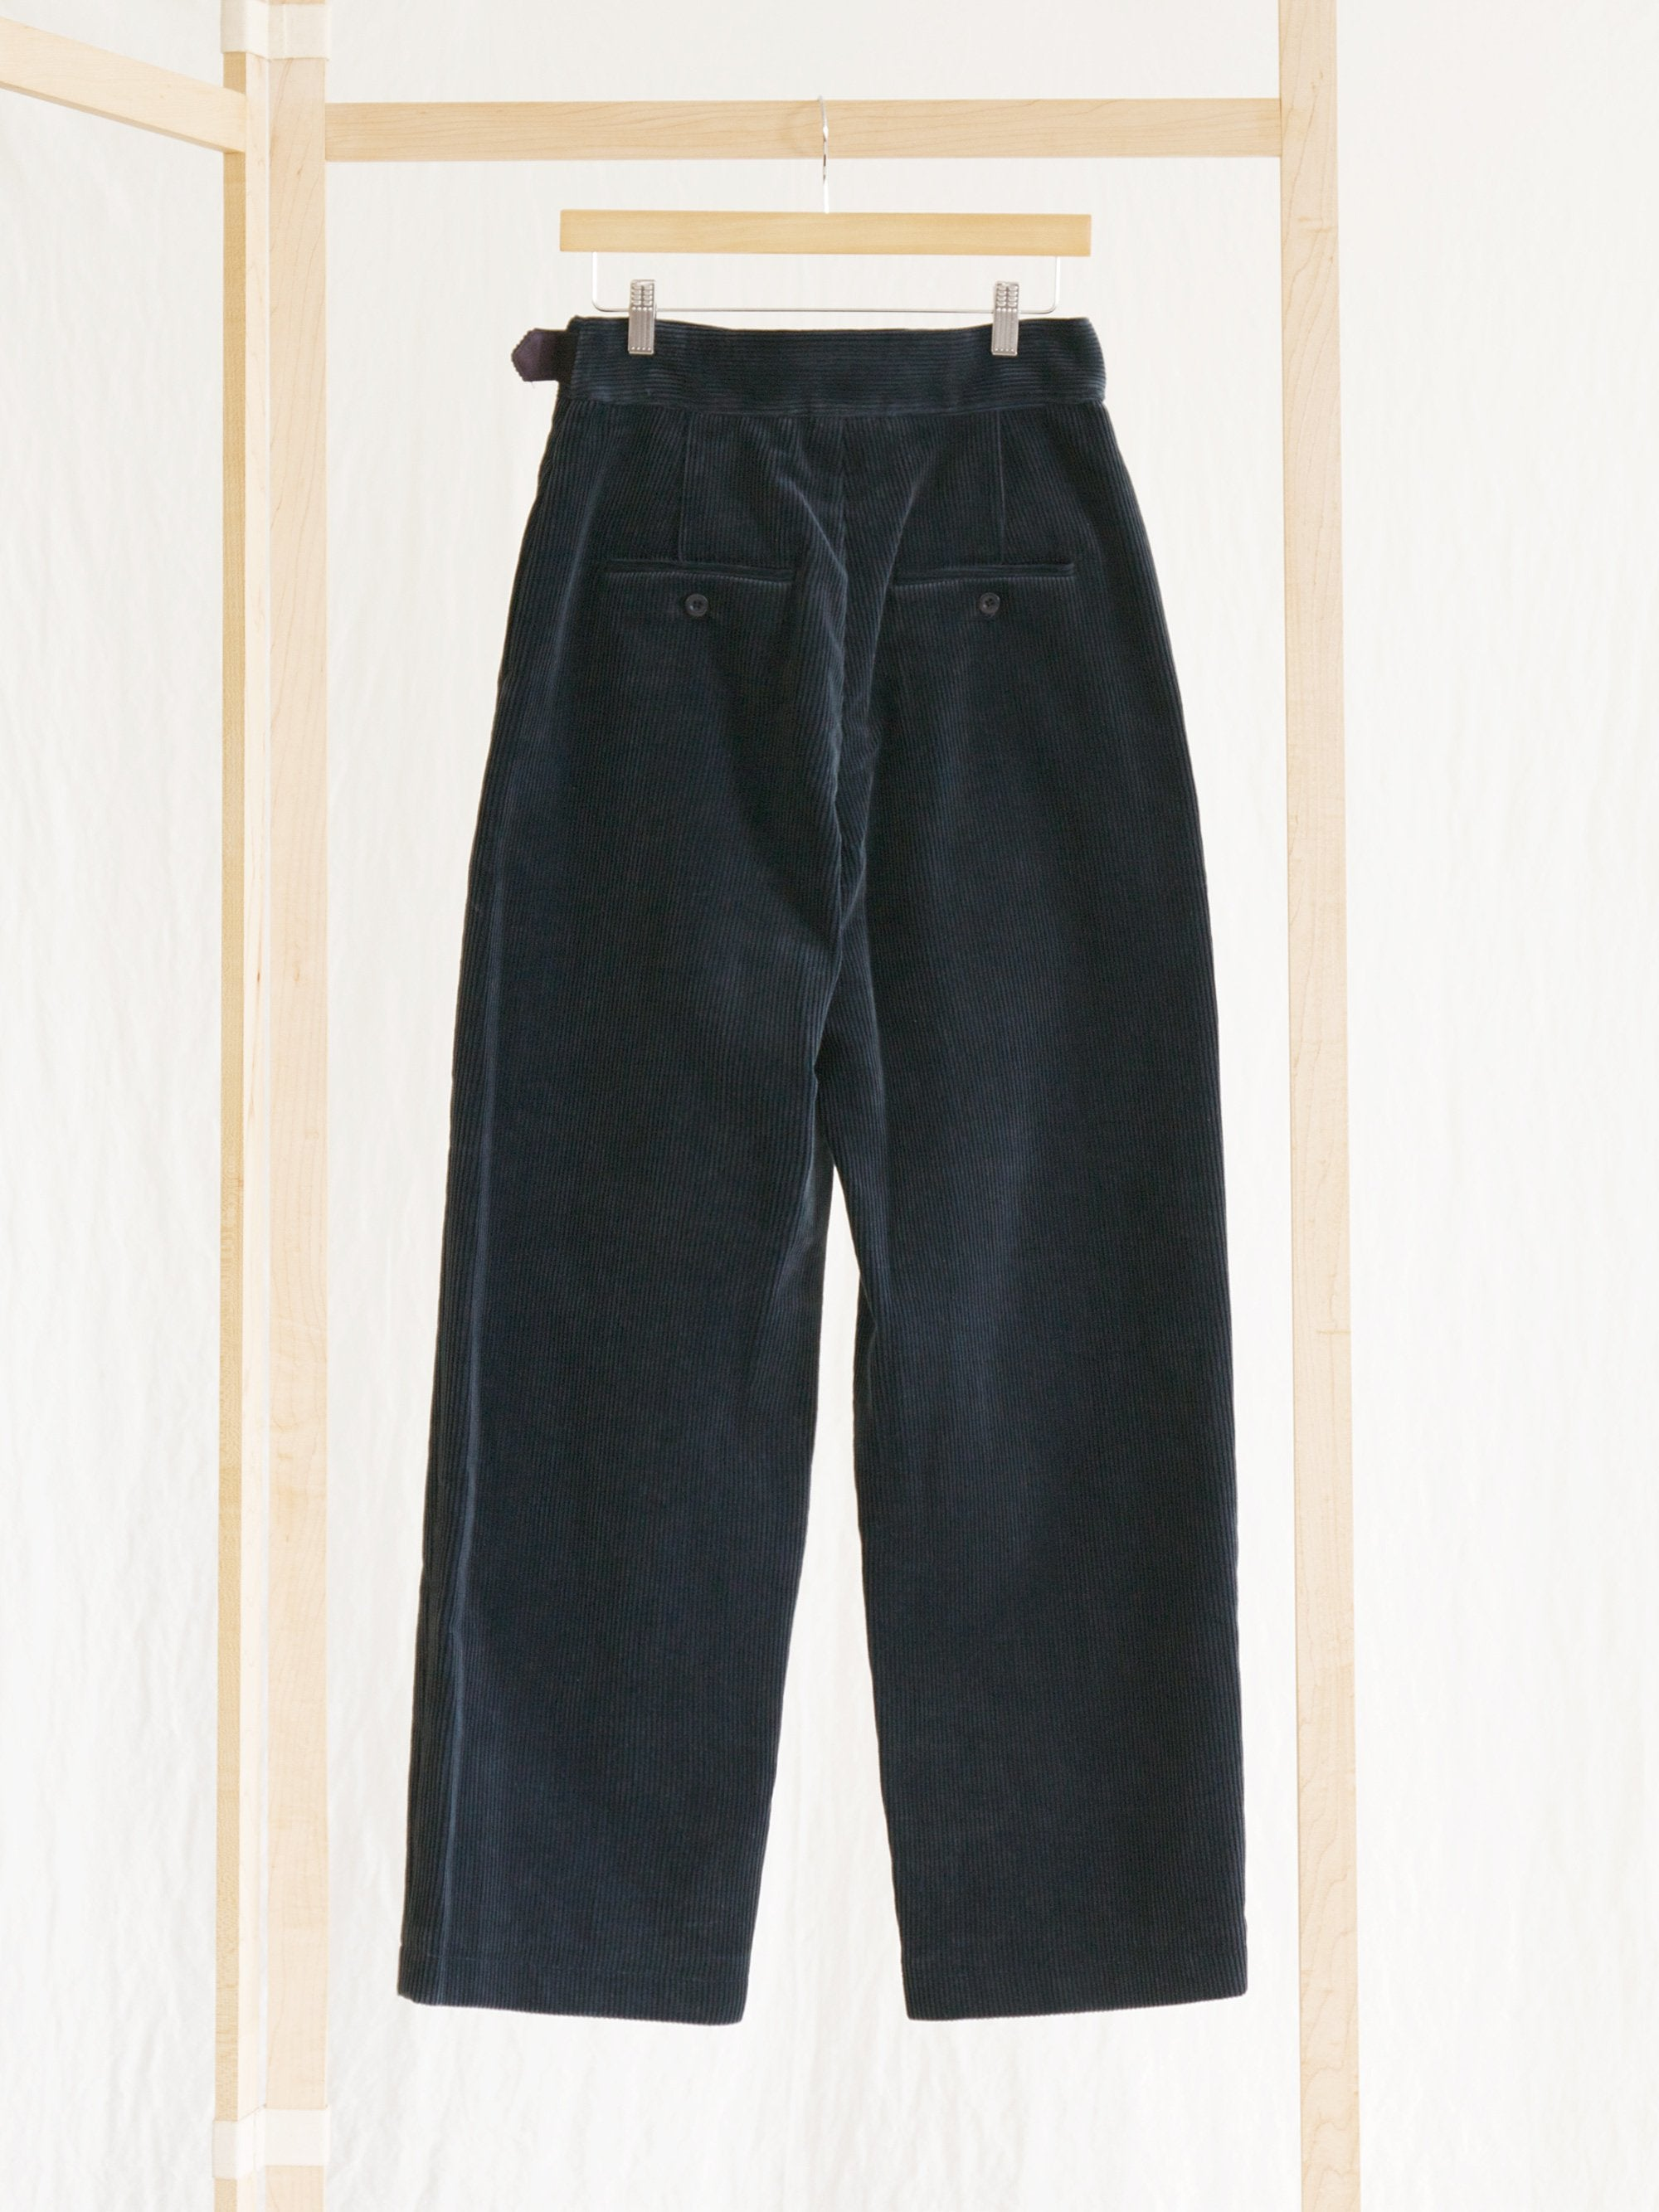 Namu Shop - Phlannel Cotton Corduroy Gurkha Trousers - Iron Blue